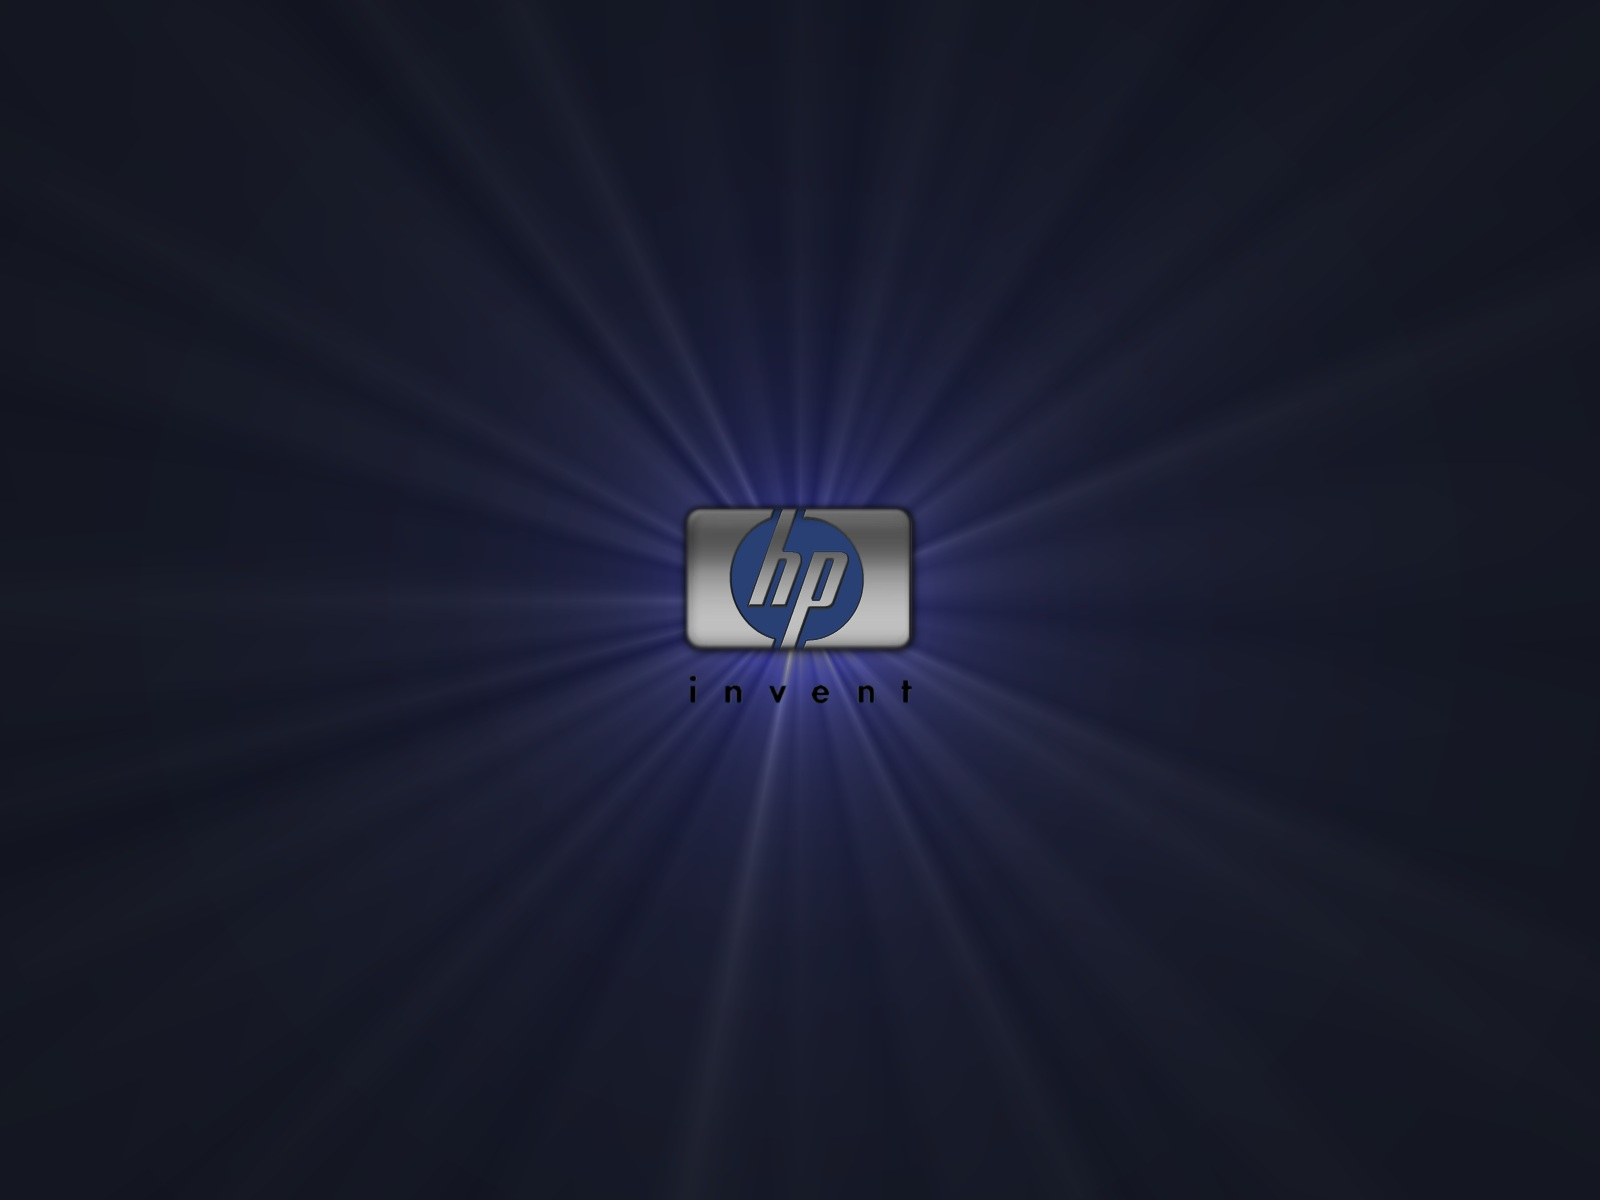 Hp touchpad wallpaper download